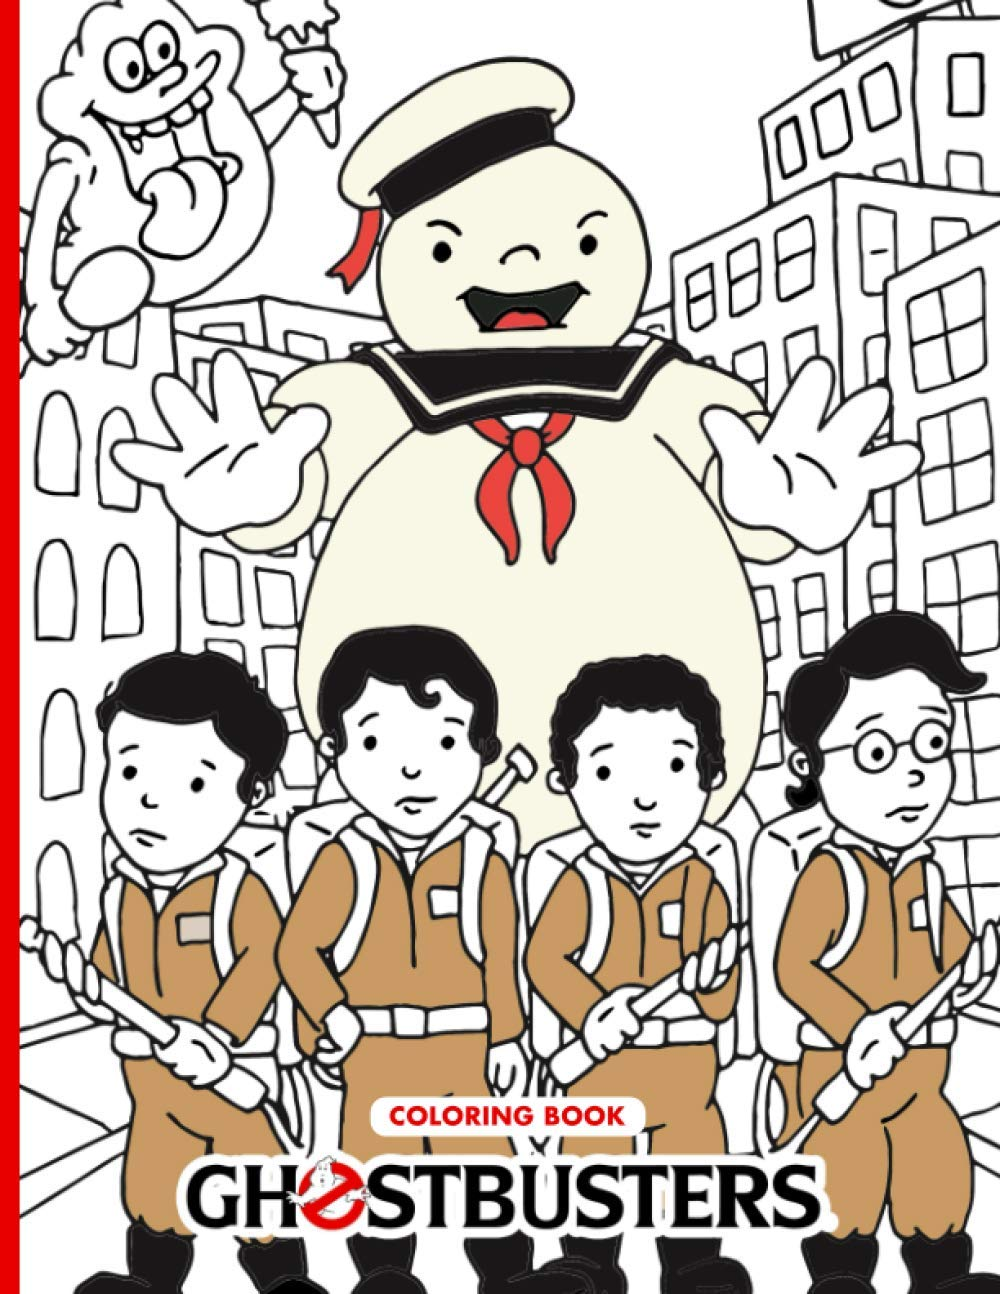 Amazon Com Ghostbusters Coloring Book Over 50 Ghostbusters Illustrations Confidence And Relaxation Coloring Books For Kid And Adult Color Wonder Creativity 9798697605684 Barbara Kenna Books